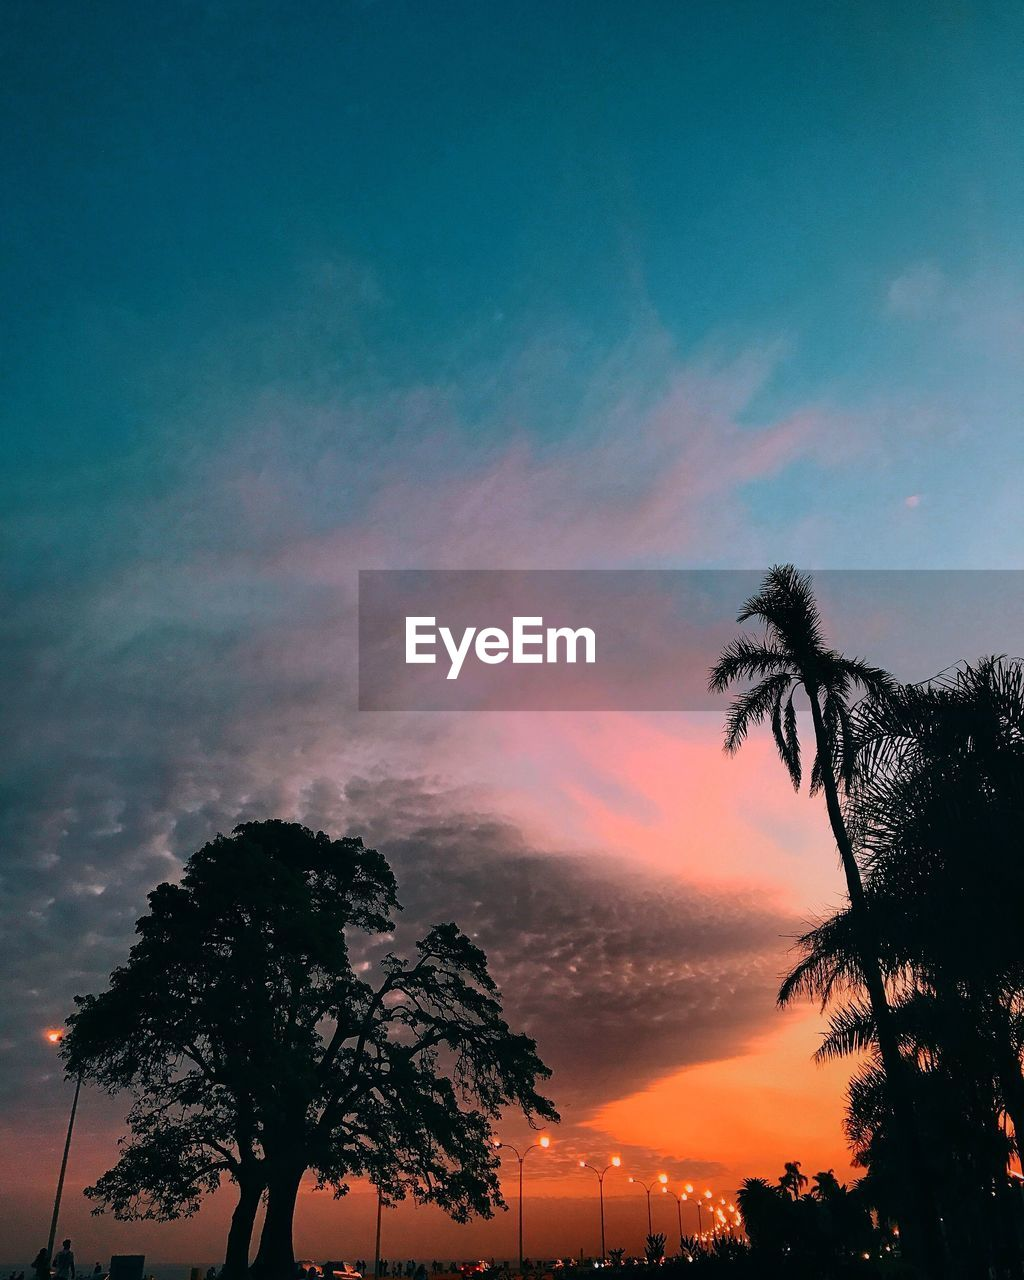 sky, tree, sunset, plant, silhouette, cloud - sky, beauty in nature, scenics - nature, nature, orange color, tranquility, no people, tranquil scene, growth, tropical climate, palm tree, low angle view, outdoors, dramatic sky, idyllic, romantic sky